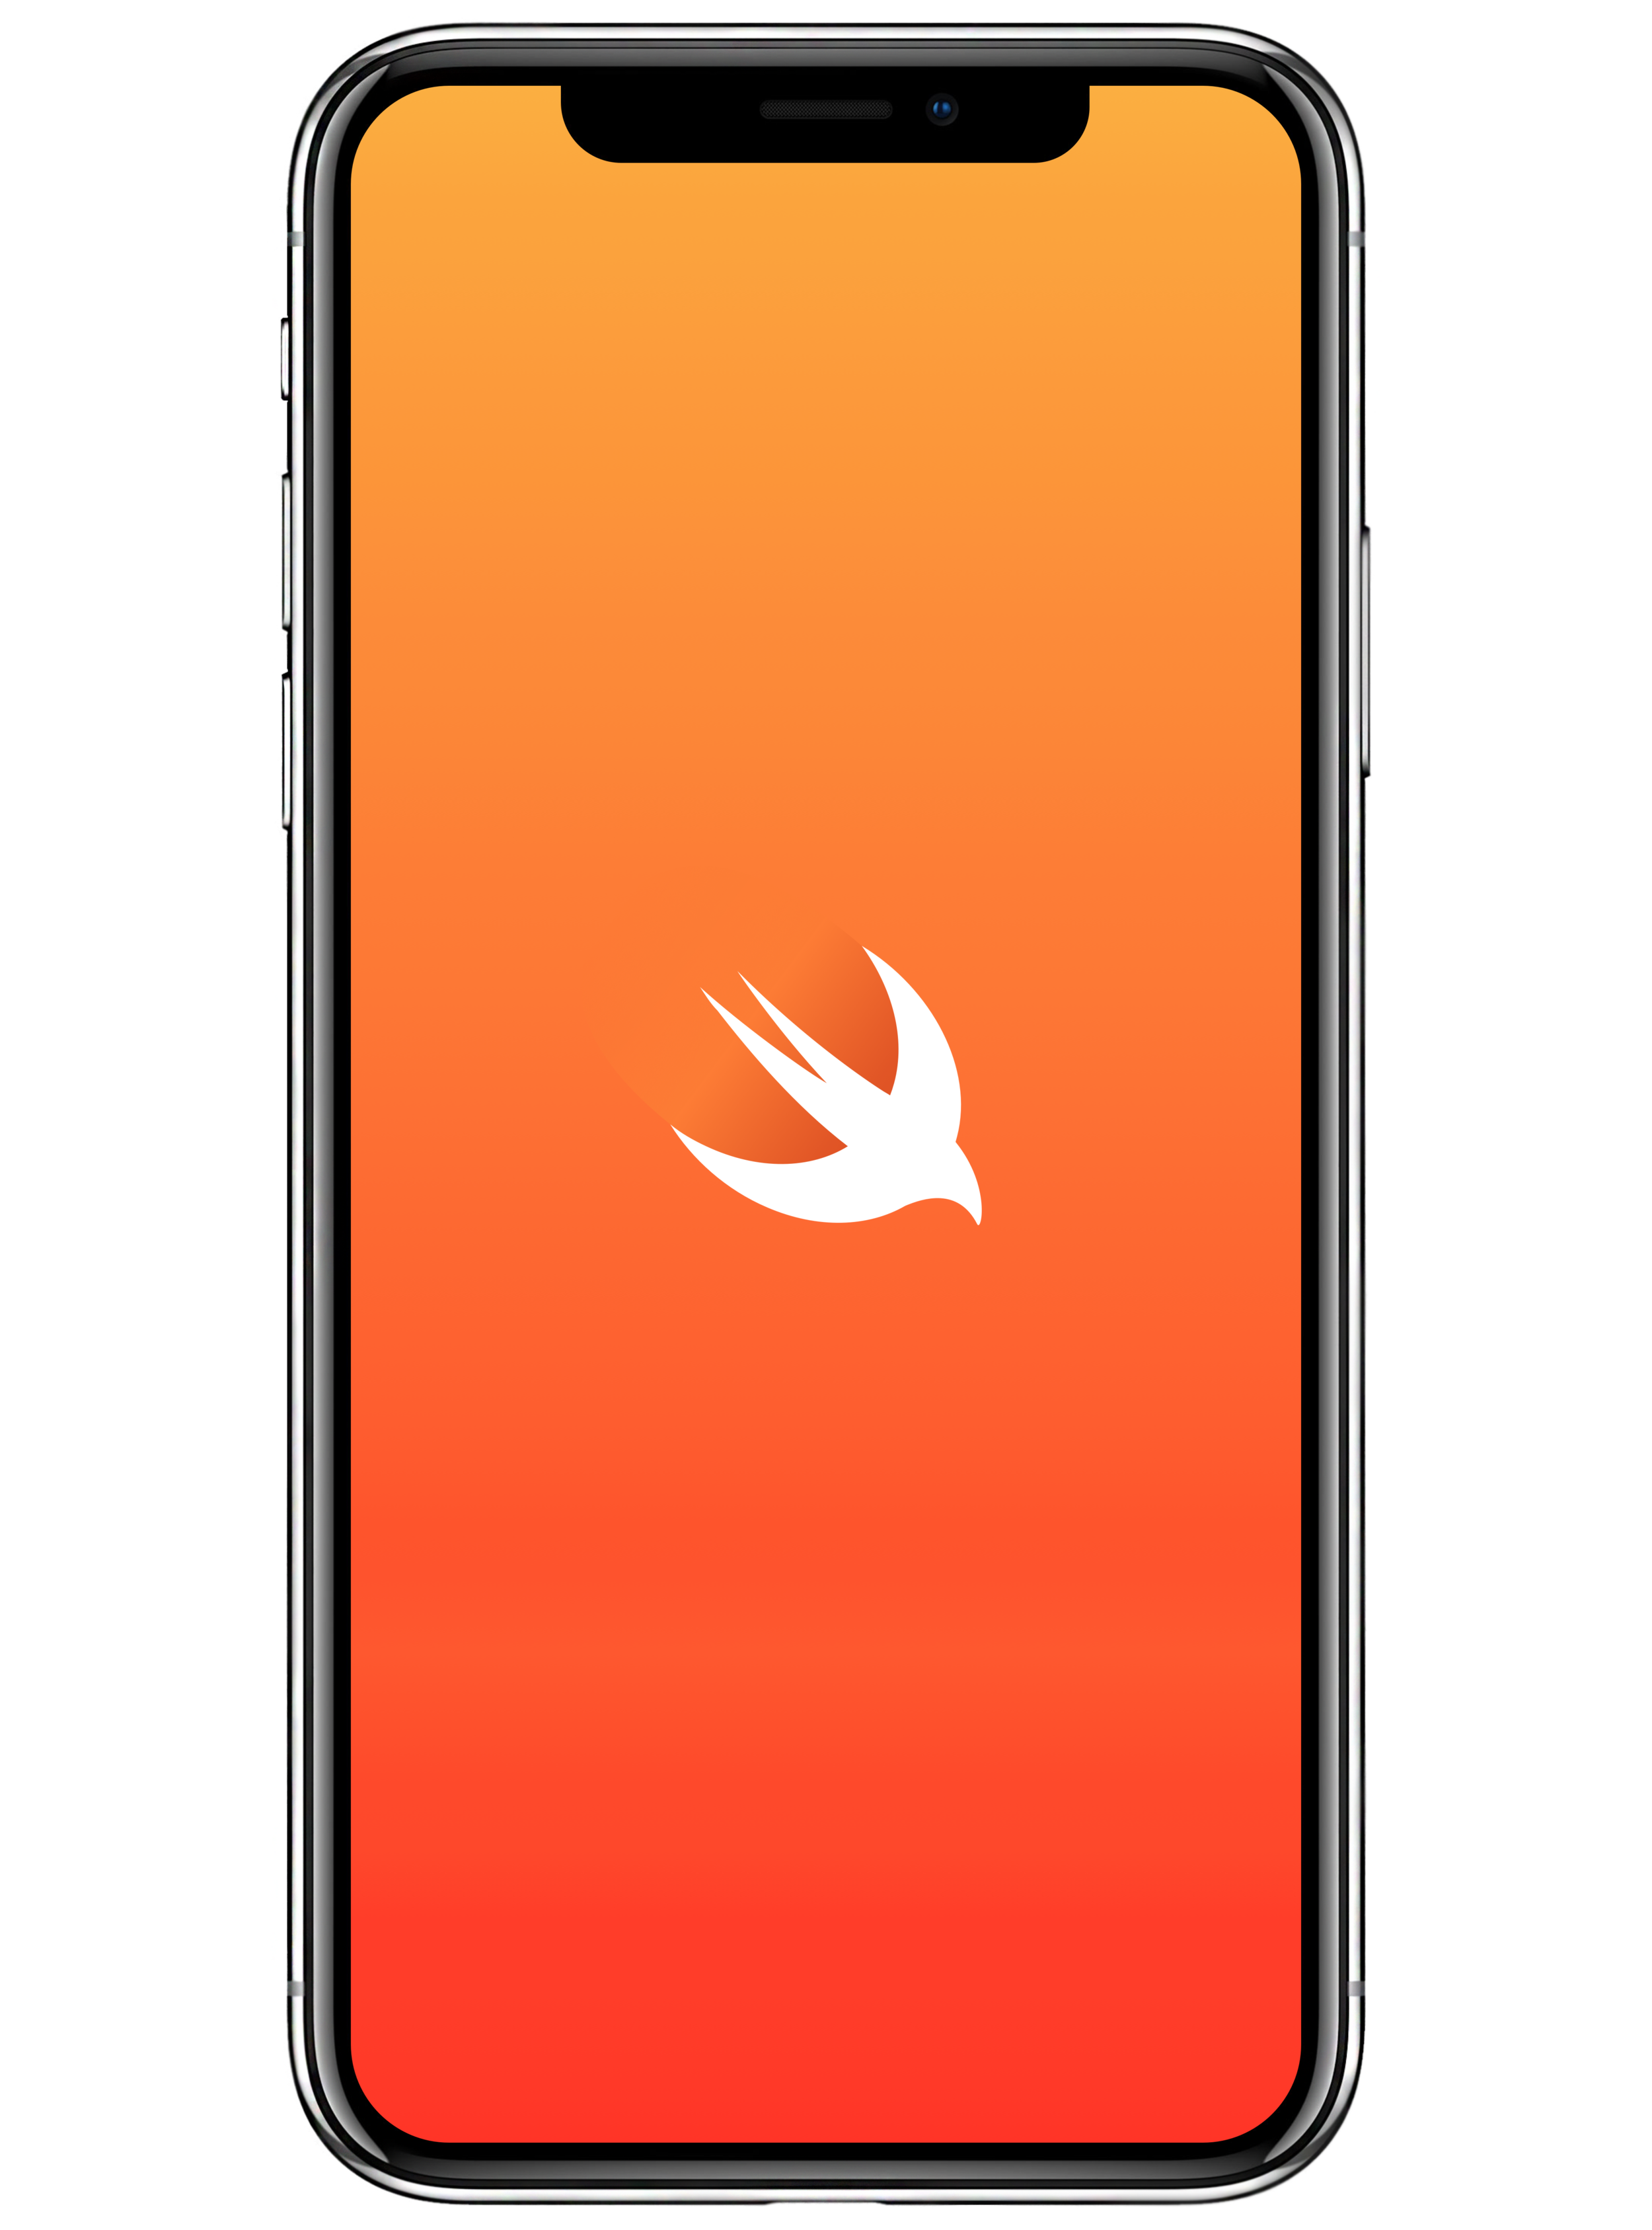 Development - I am currently learning Swift so that I can develop an MVP of Rally for iOS after I finish the design of a few more screens and complete a few more rounds of usability testing. The MVP will focus on matching users over intent and getting them into a chat to begin creating plans.